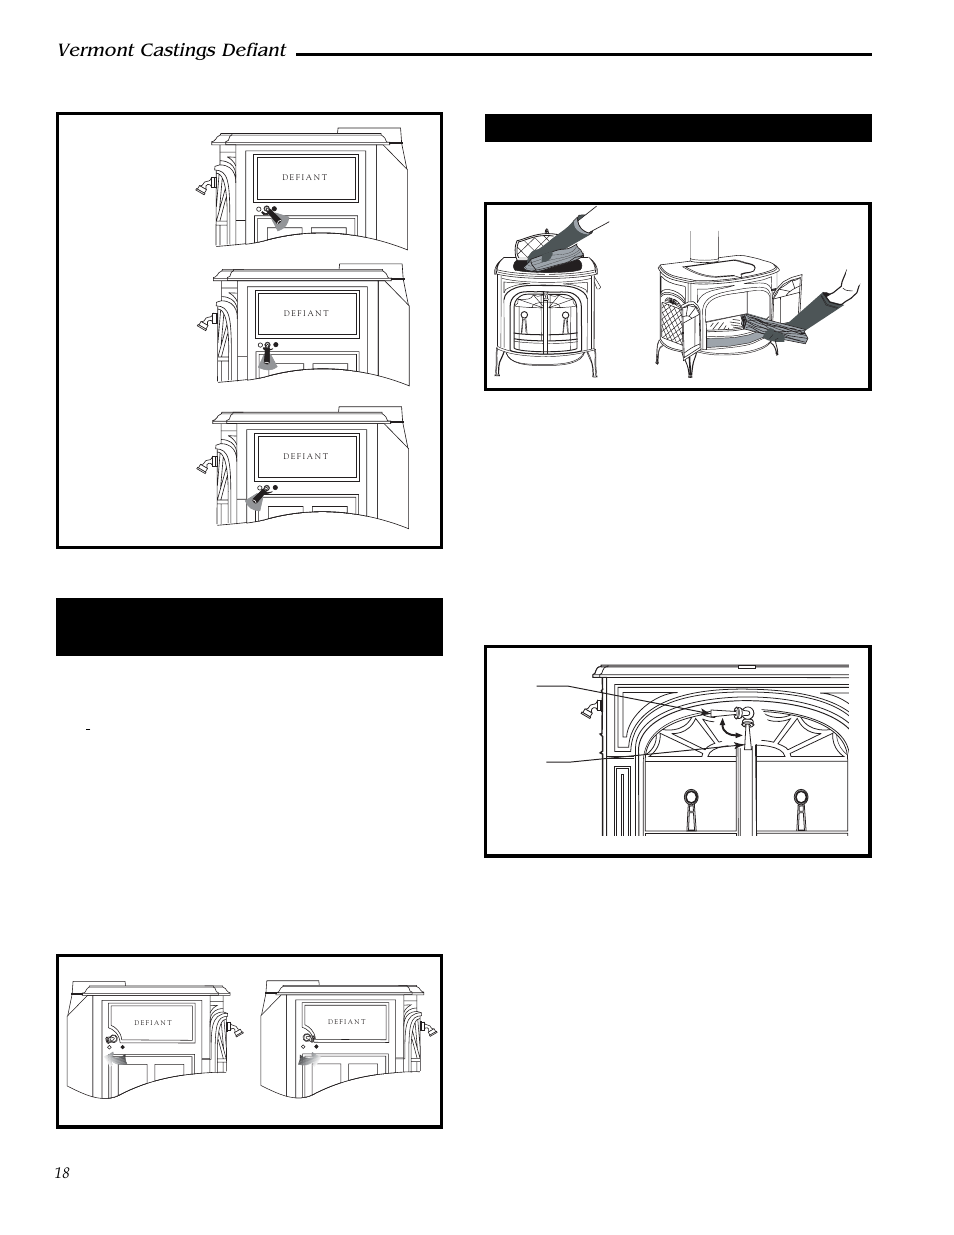 Vermont castings defiant, A damper directs air flow within the stove ...